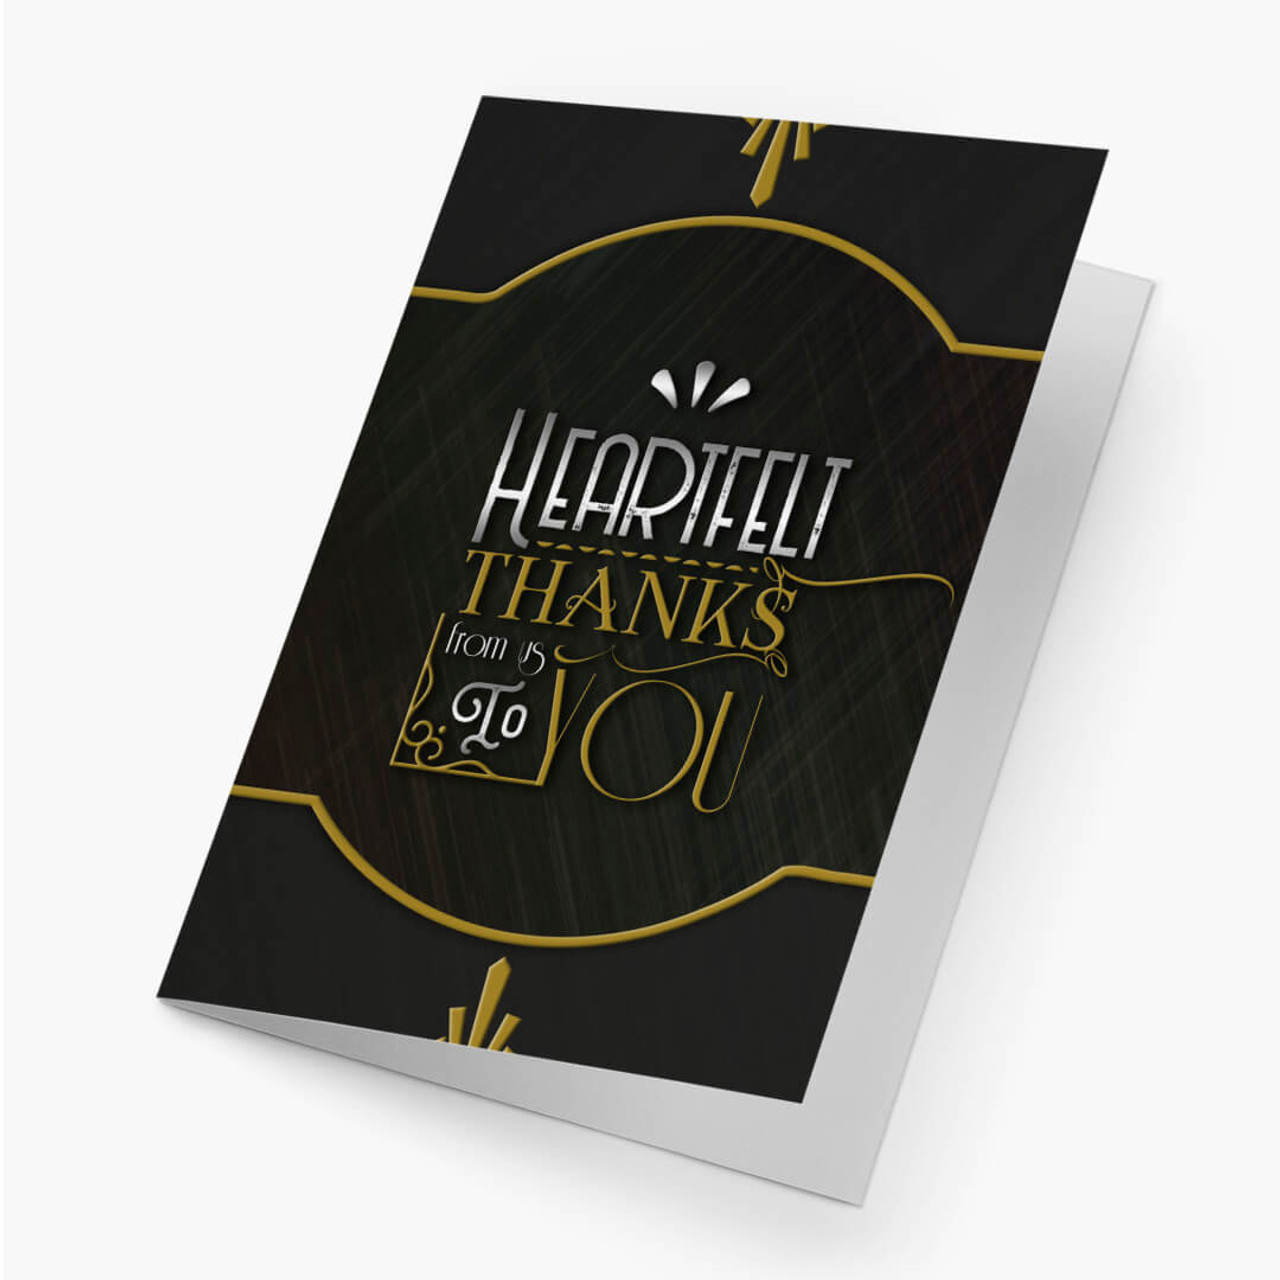 Heartfelt Thanks Card